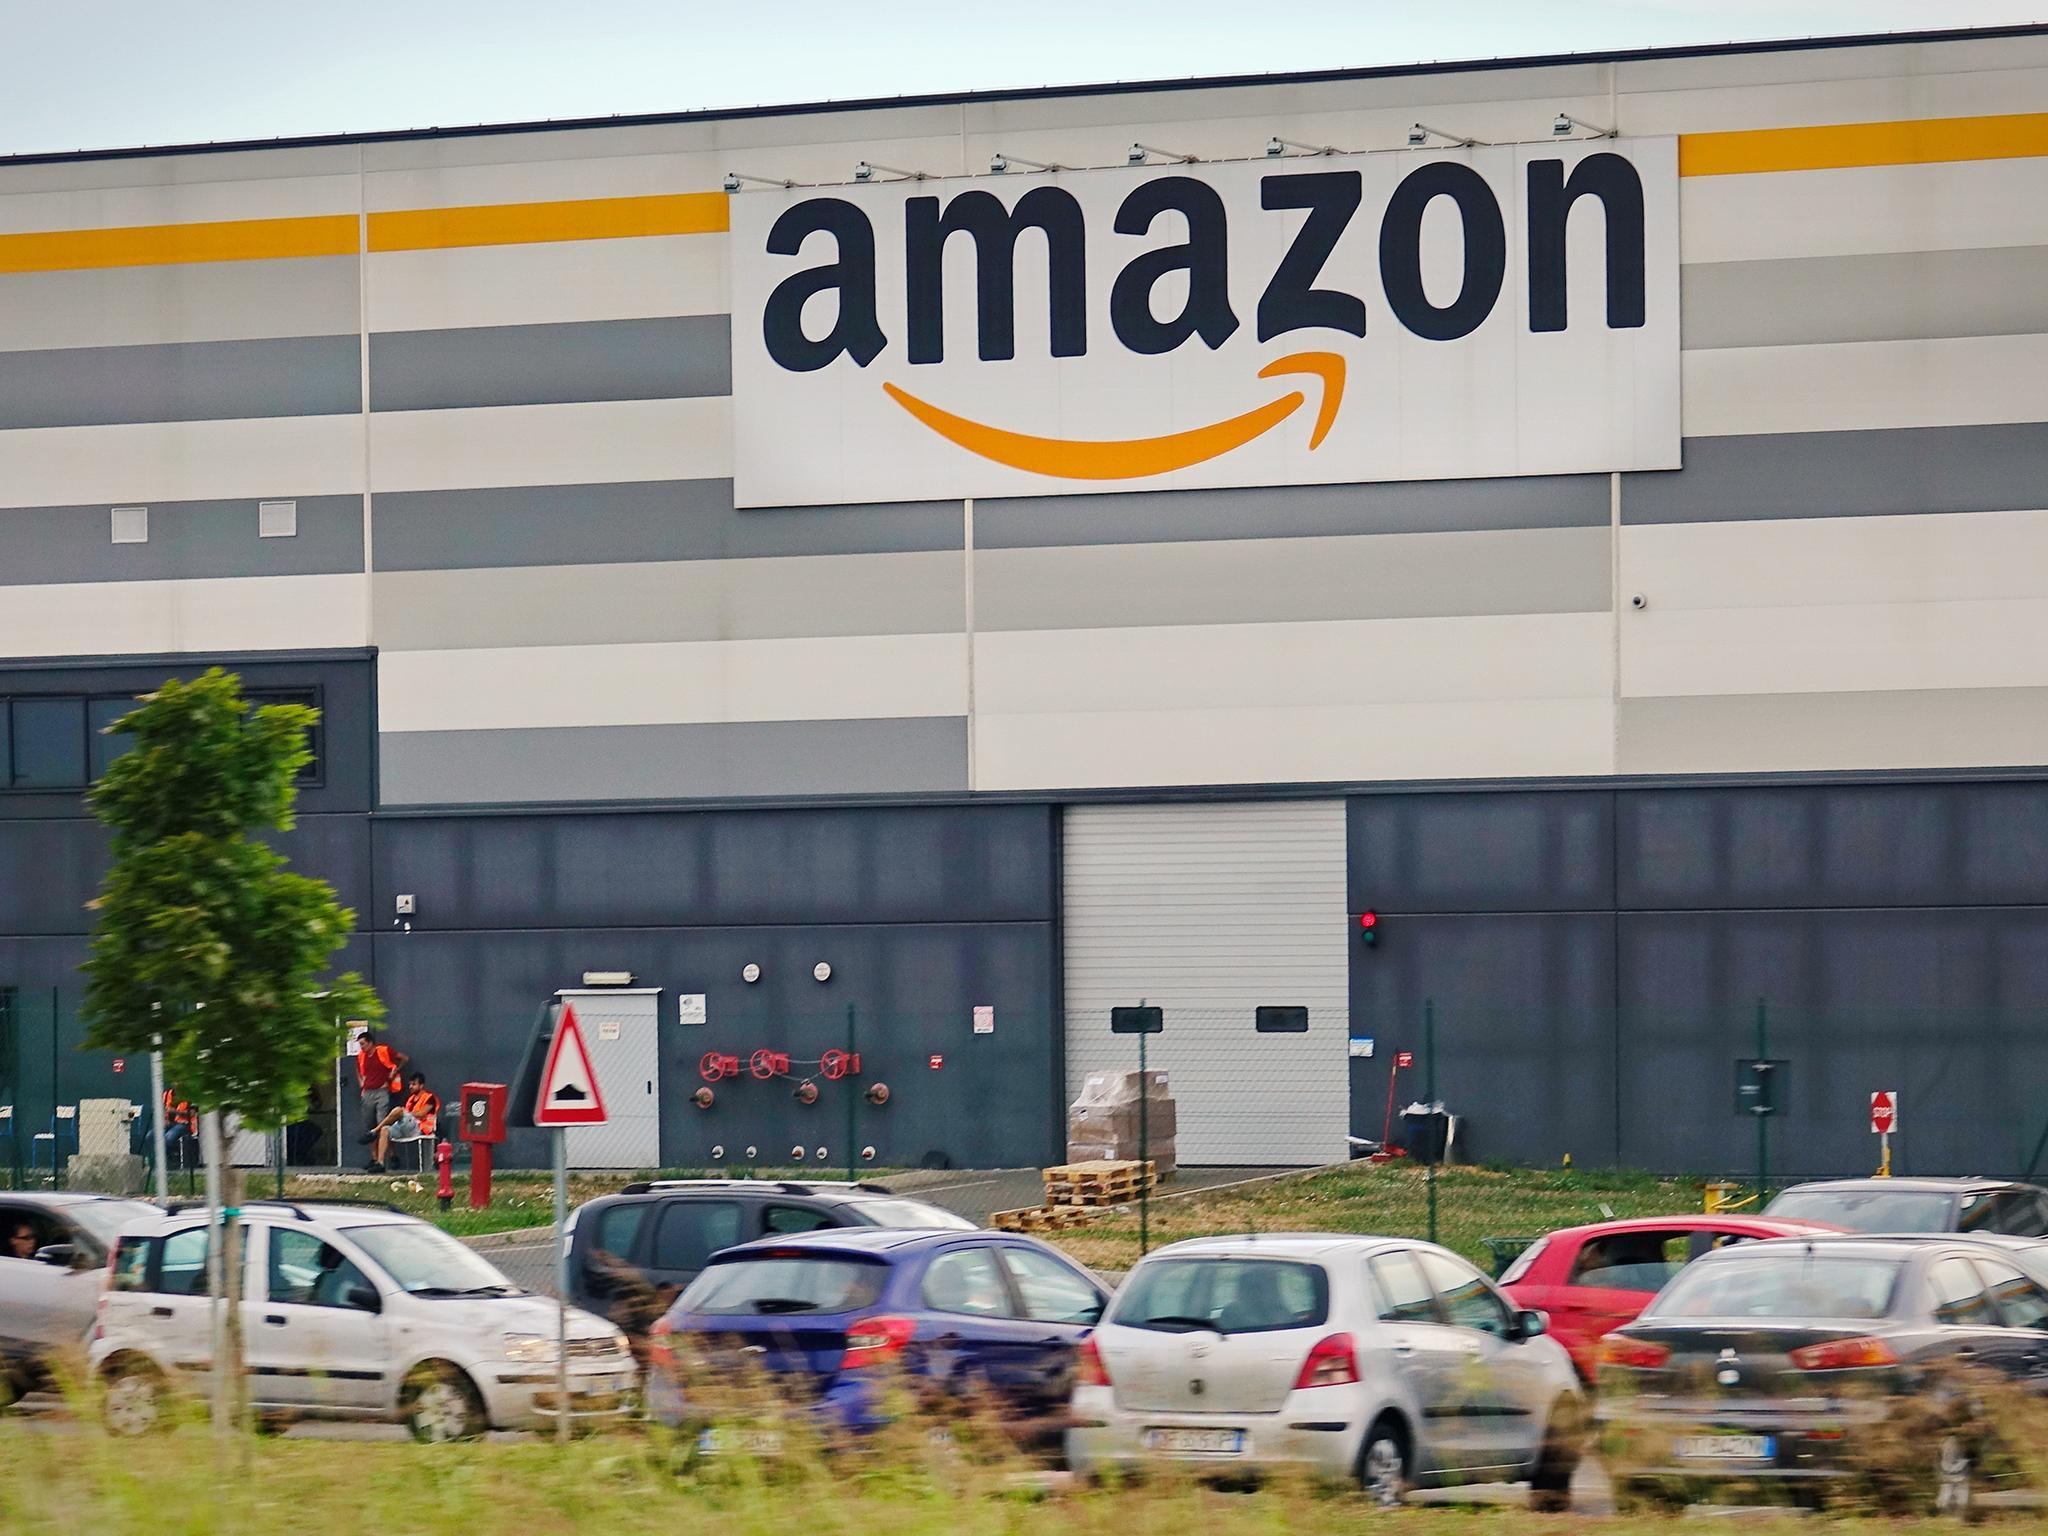 Amazon pledges to create 2,000 new permanent jobs in France this year